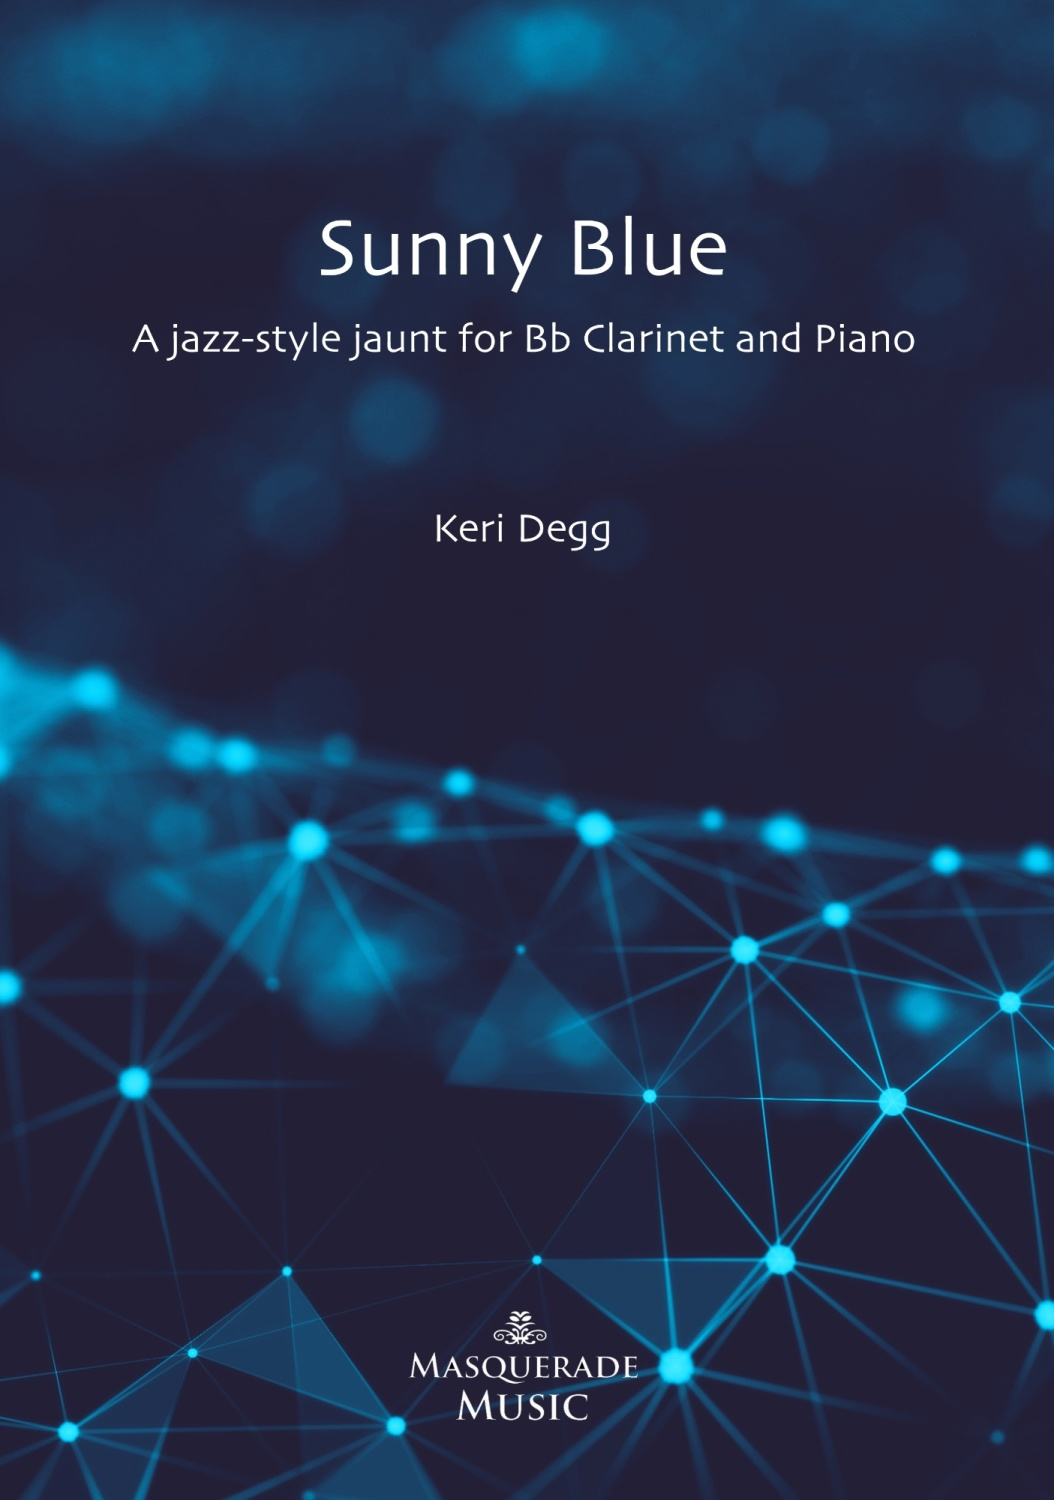 Sunny Blue (for Bb Clarinet & Piano) by Keri Degg PRE-ORDER